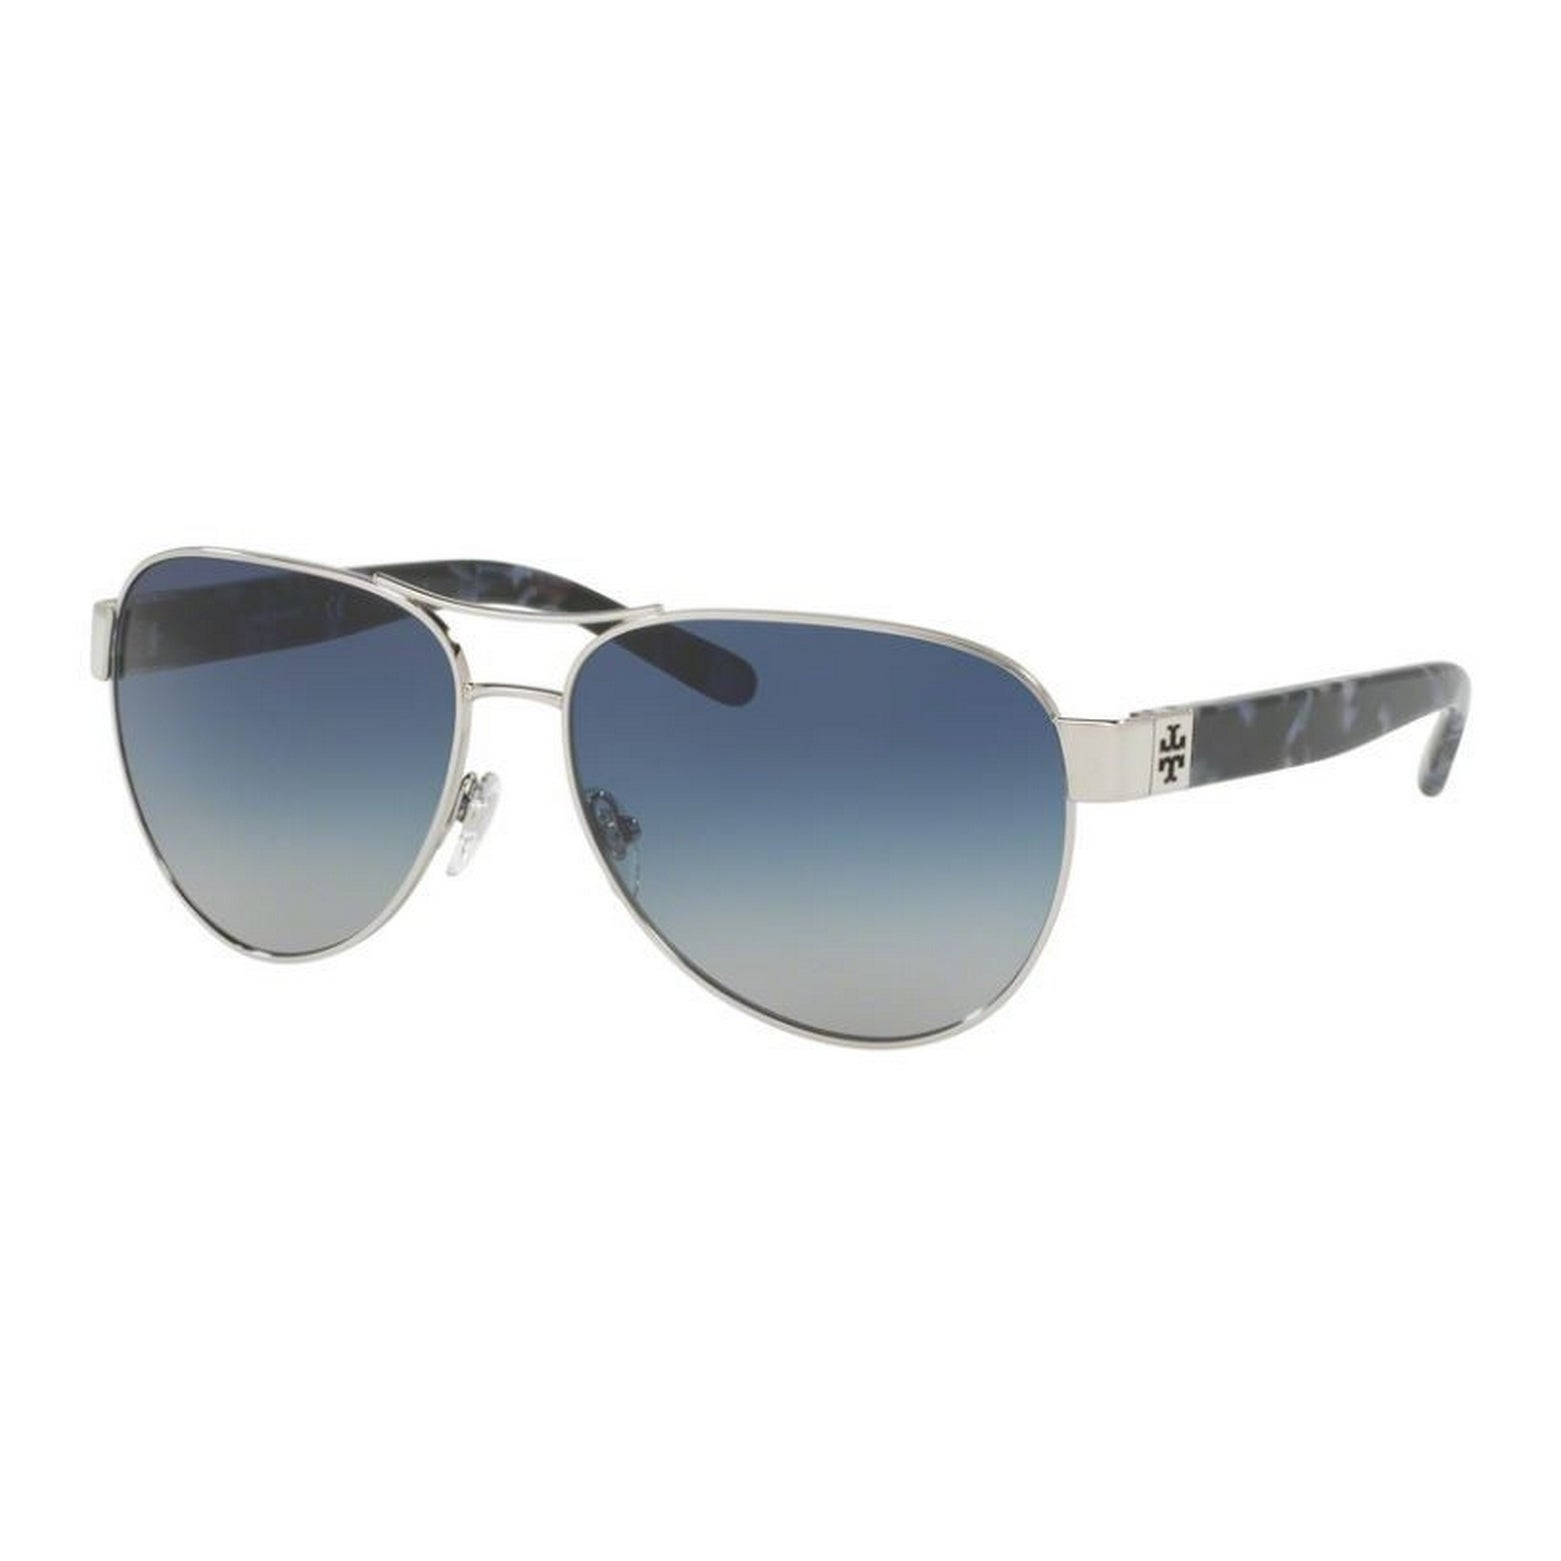 2ccb18b80b25 Shop Tory Burch TY6051 Womens Silver Frame Blue Lens Aviator Sunglasses - Free  Shipping Today - Overstock - 14692335